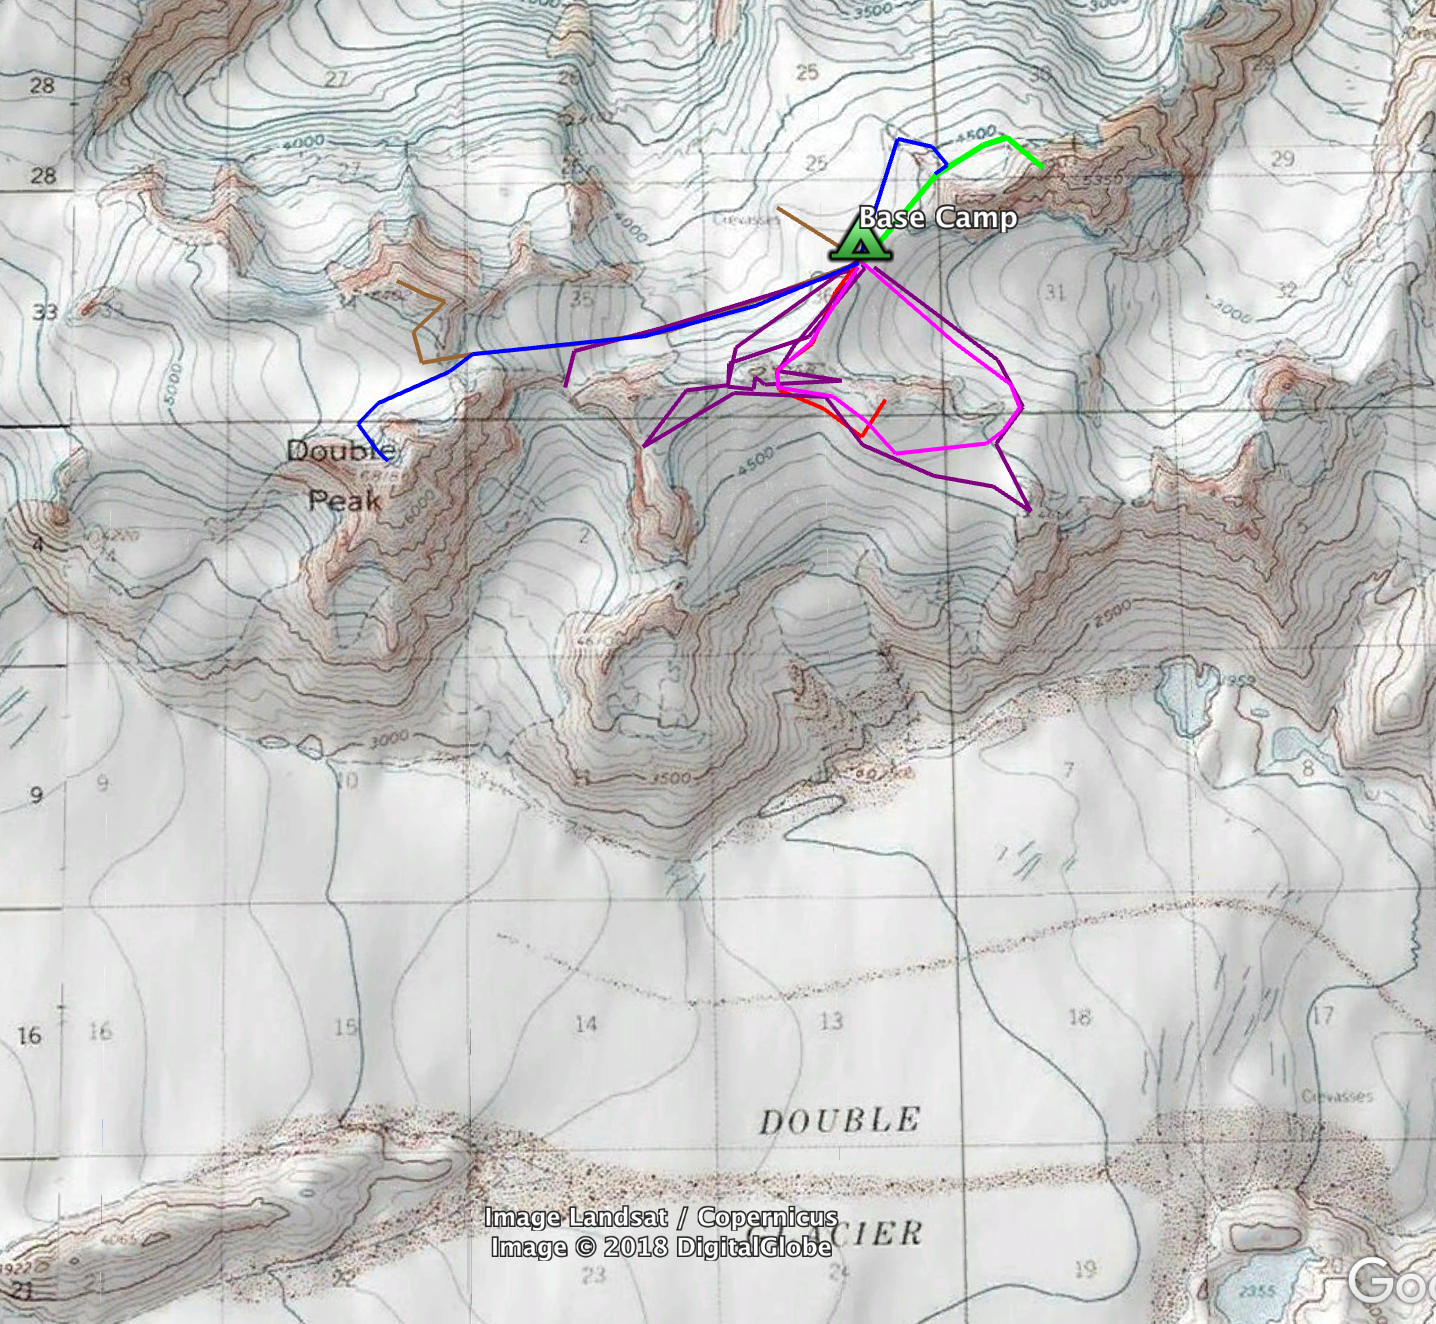 Map of the June 2018 team's ascents and attempts in the Double Glacier area.